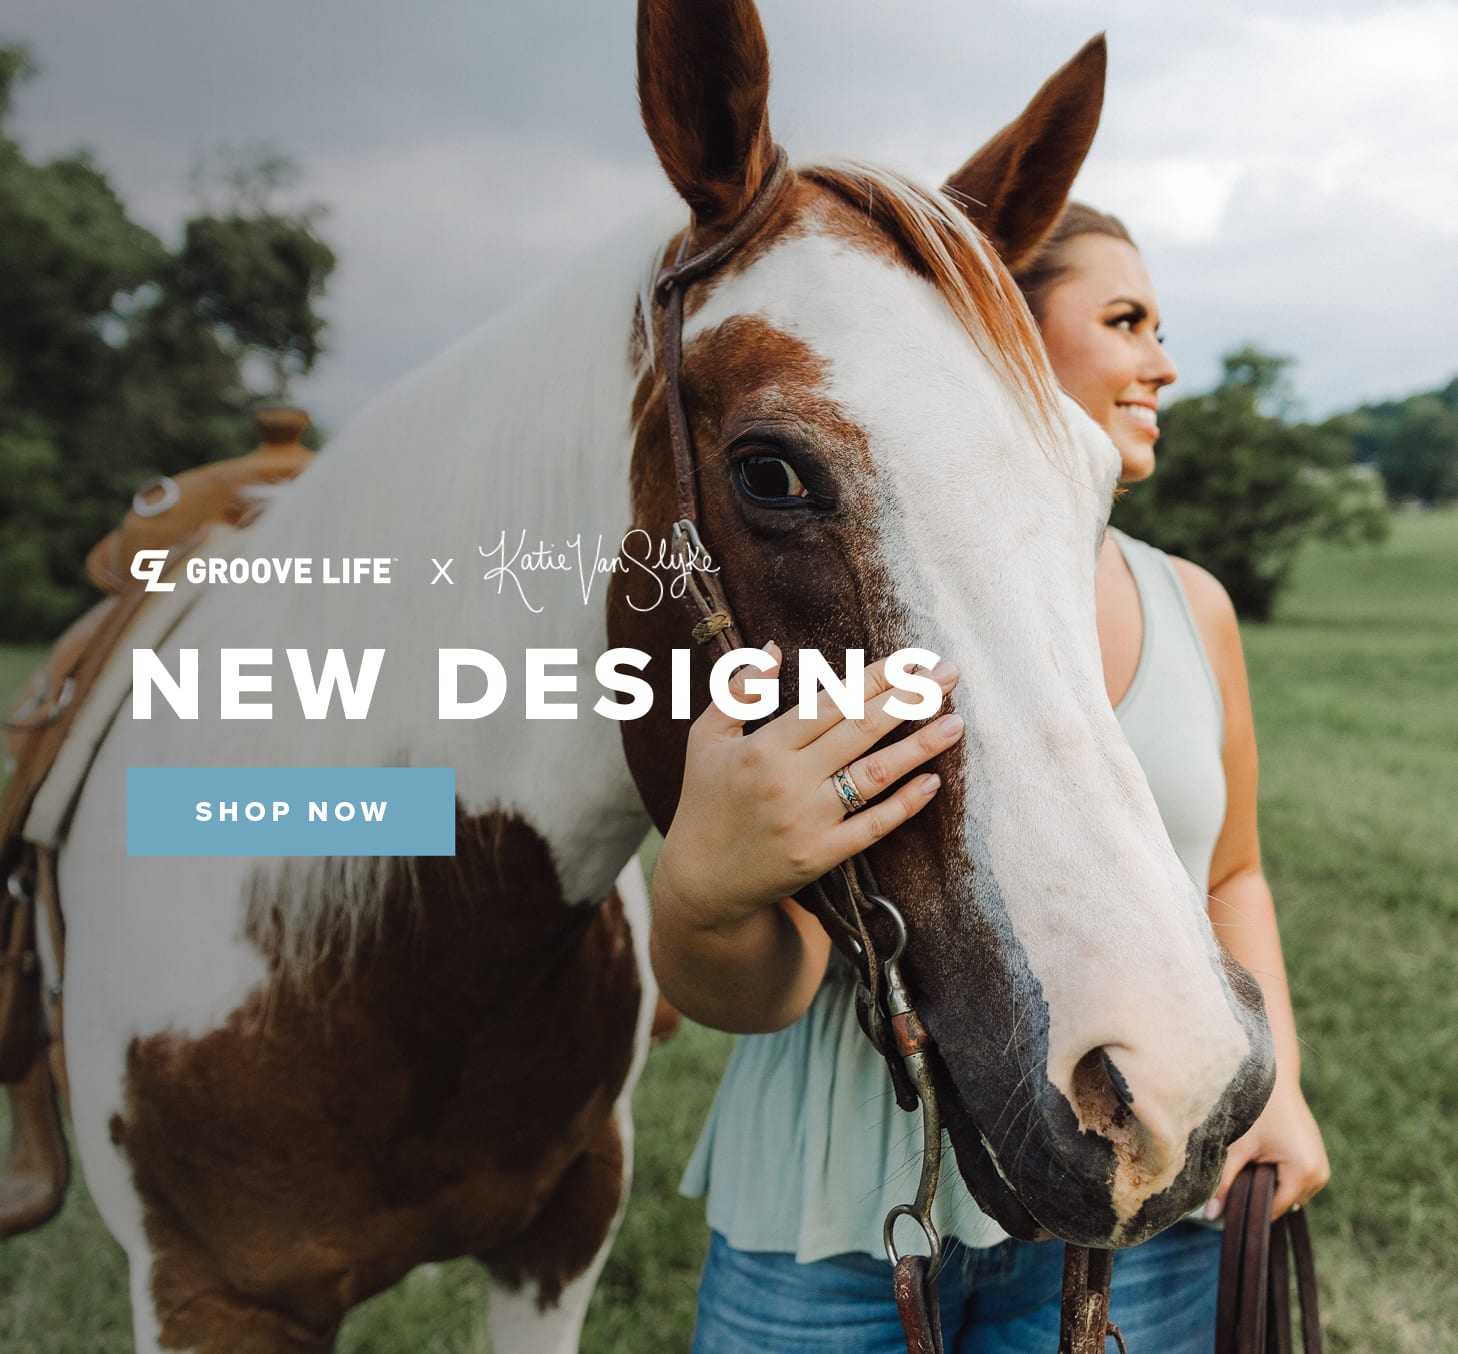 Shop New Designs by Katie Van Slyke, featuring Katie and her paint horse